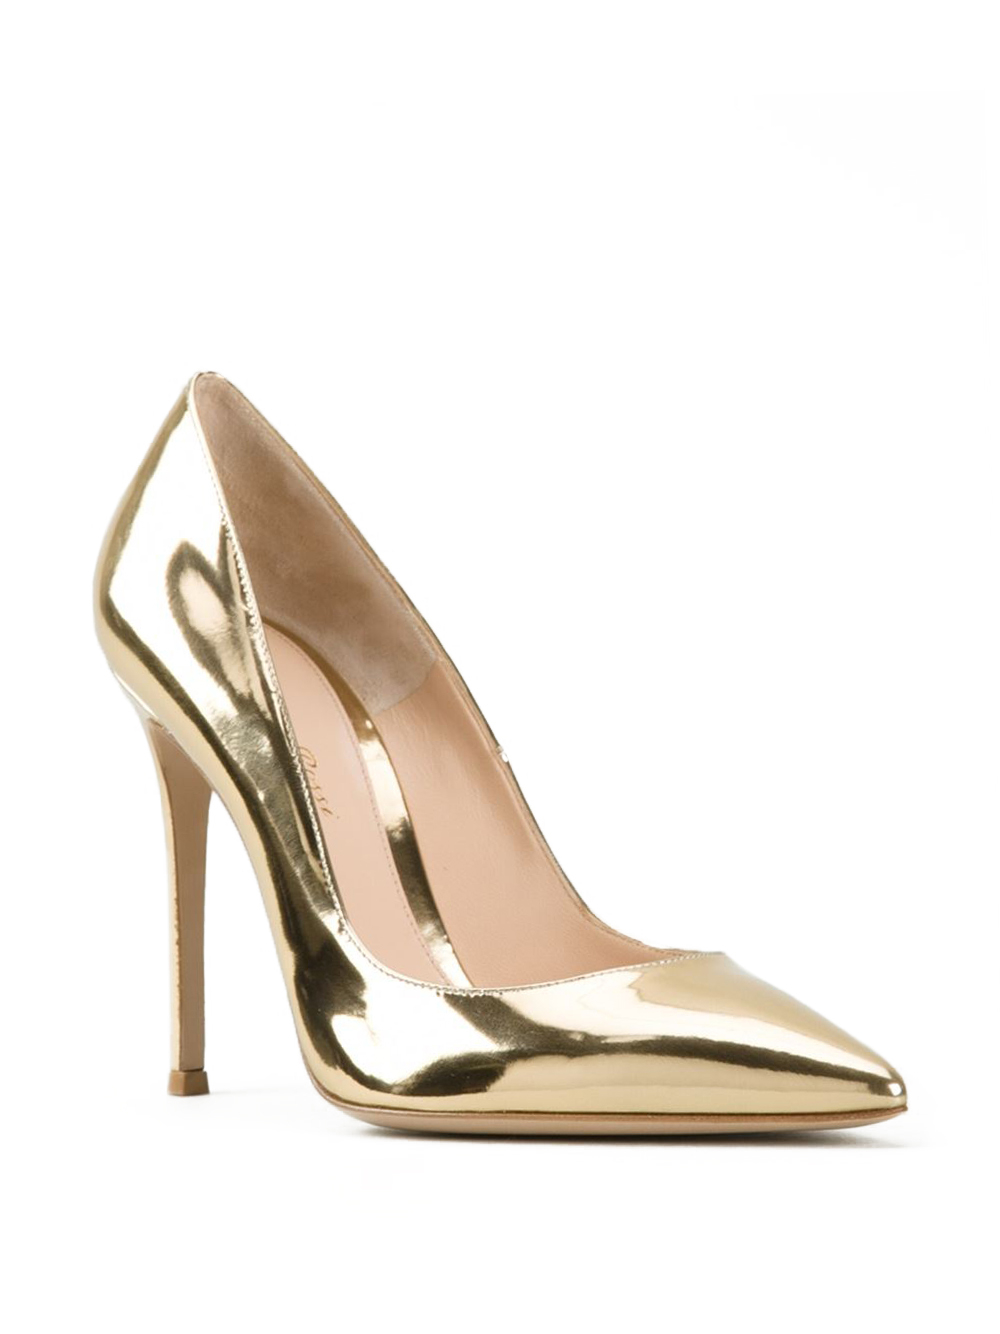 Gold Metallic Heels 1qJtTe0O